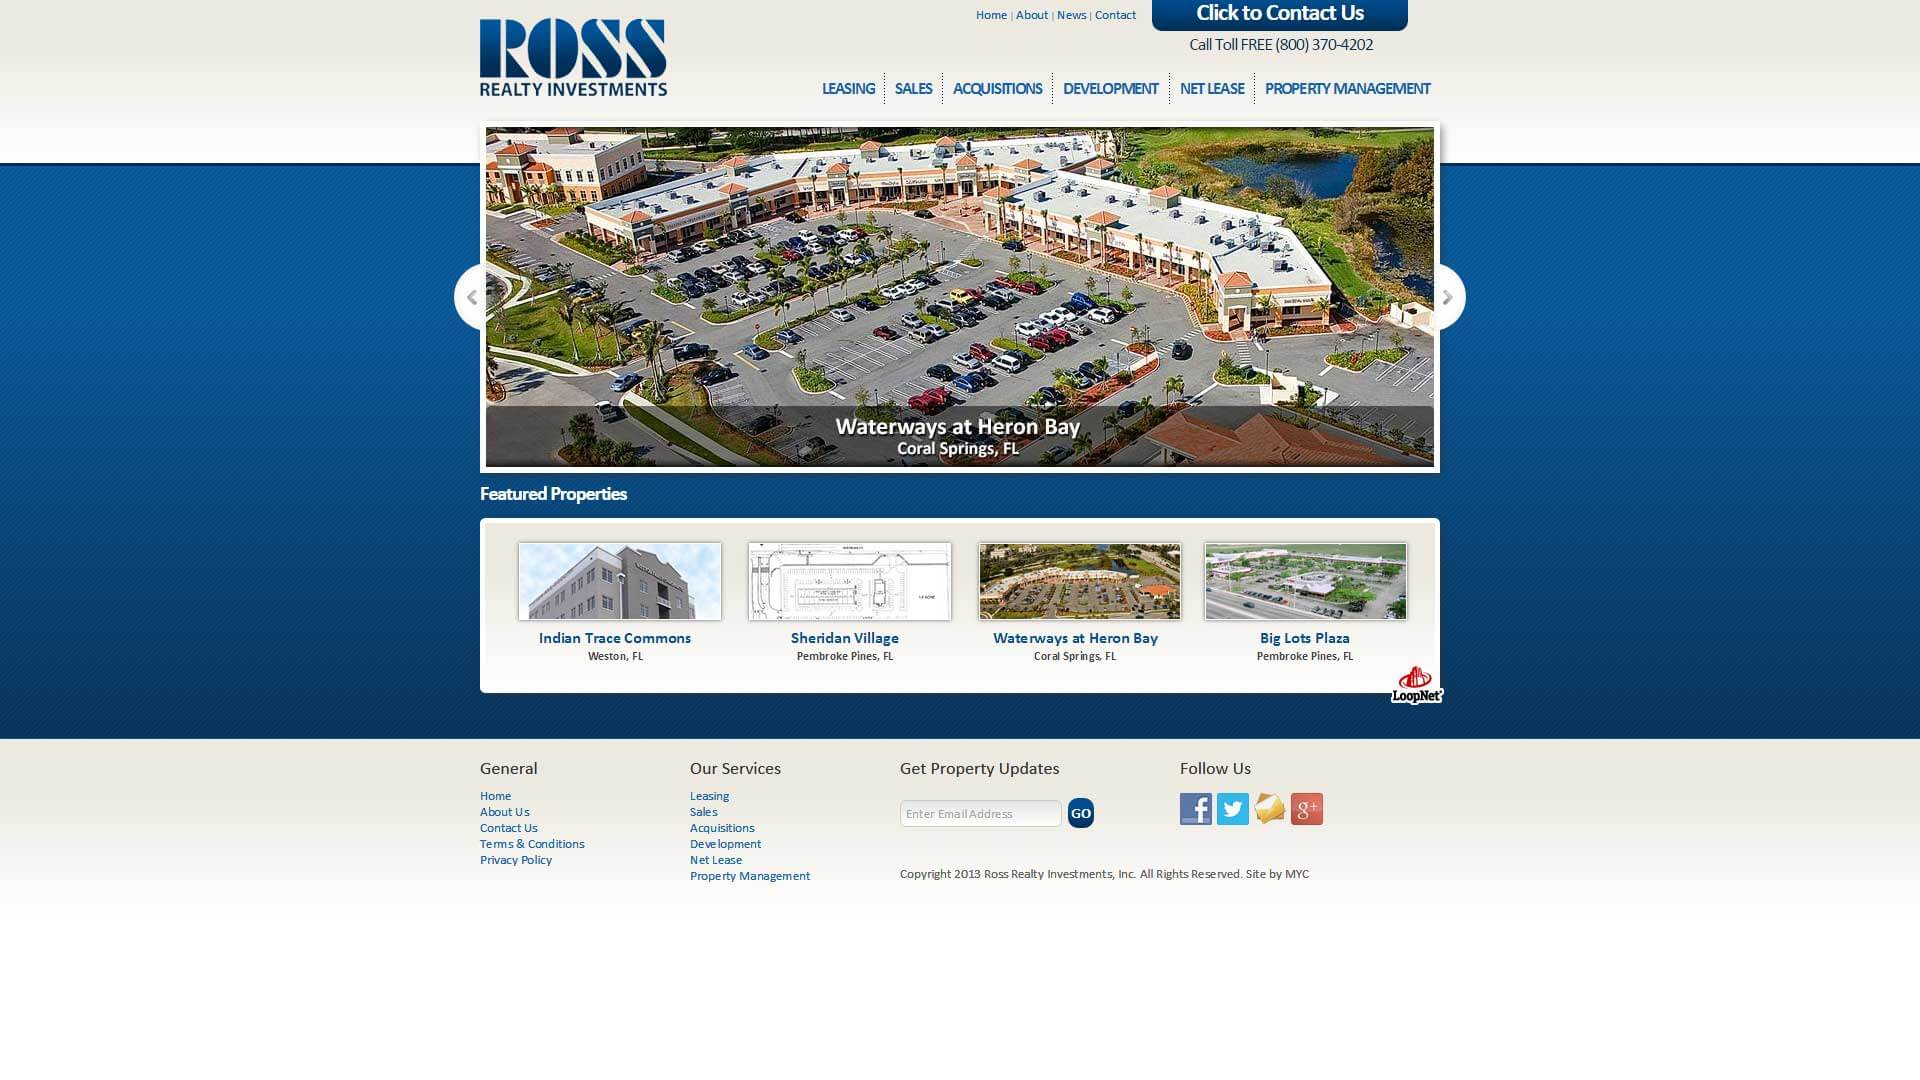 Ross Realty